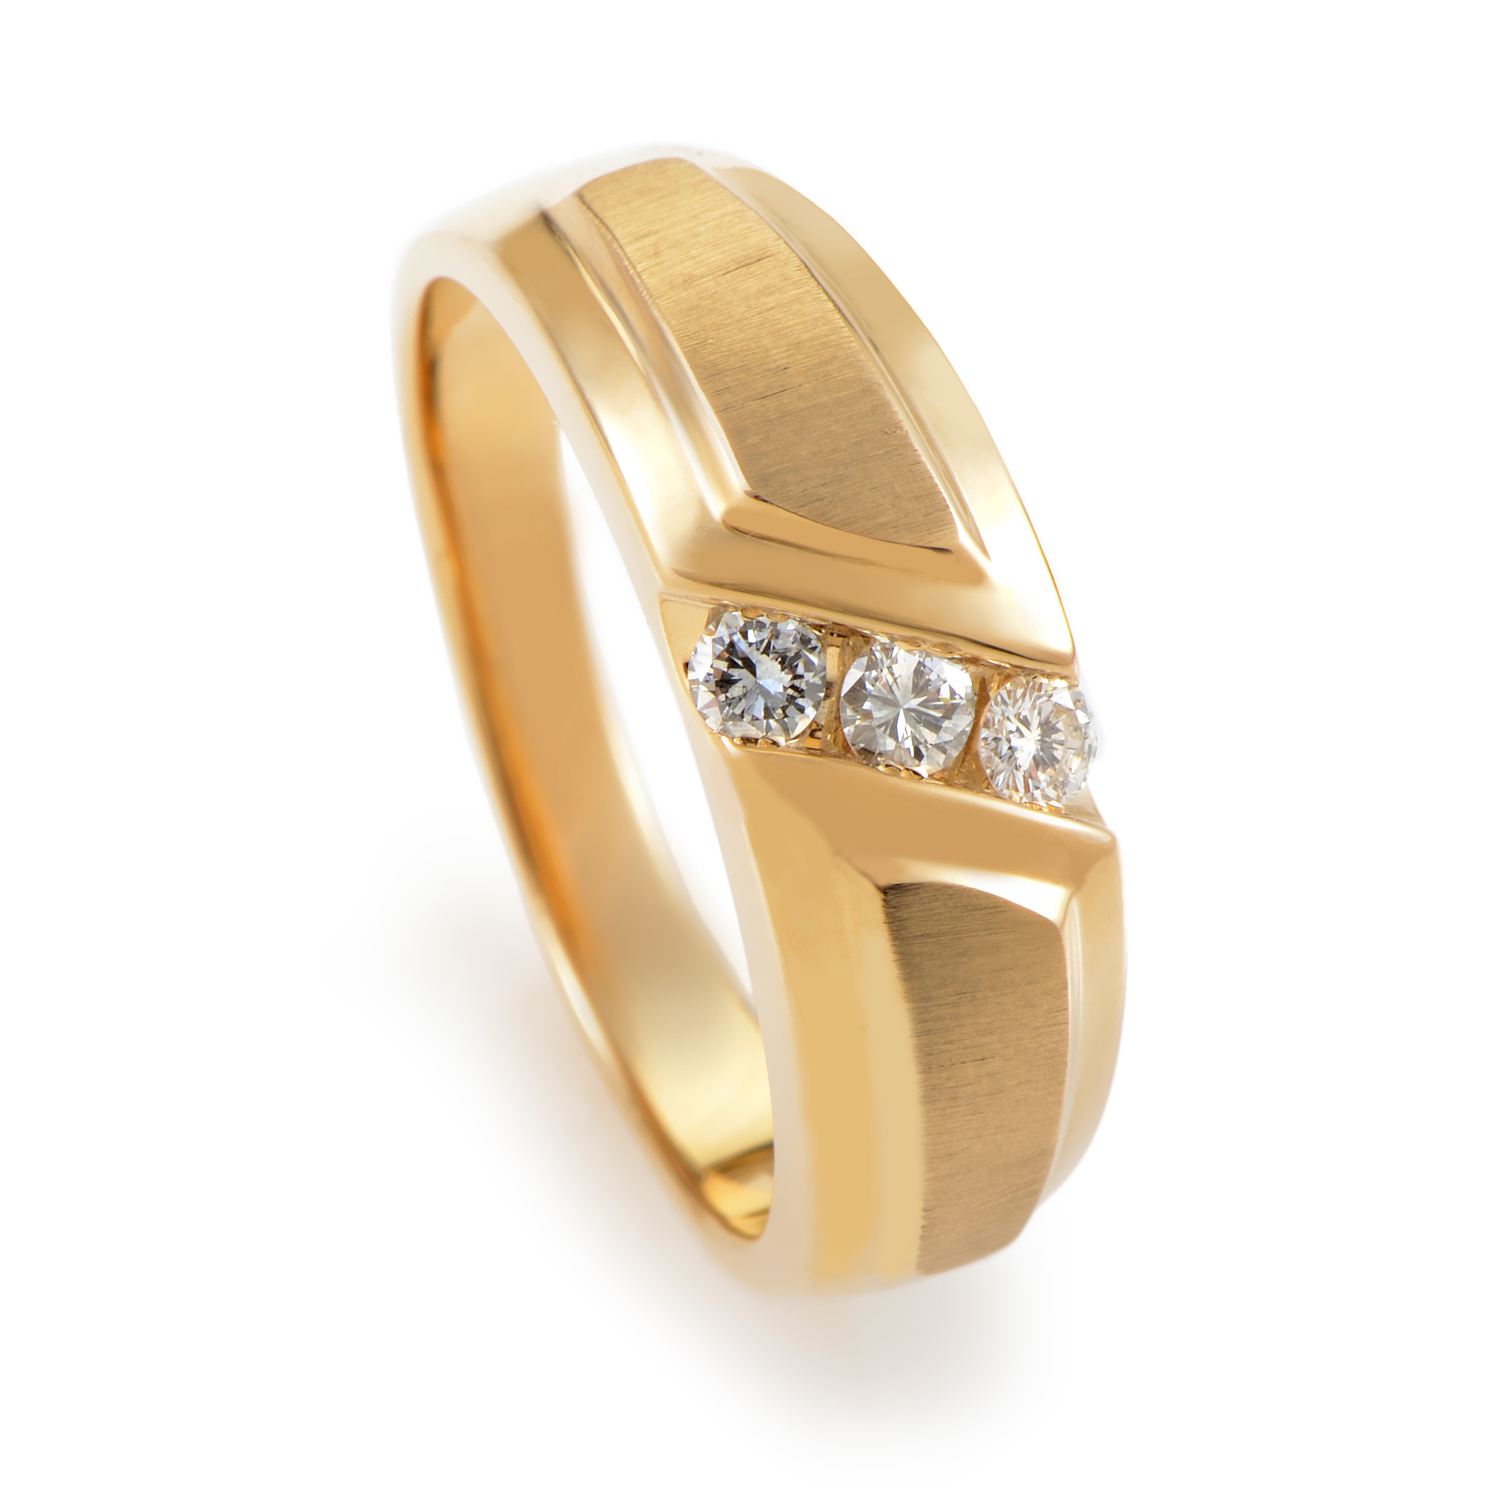 Men's 14K Yellow Gold Diamond Band Ring 56699XXX4X